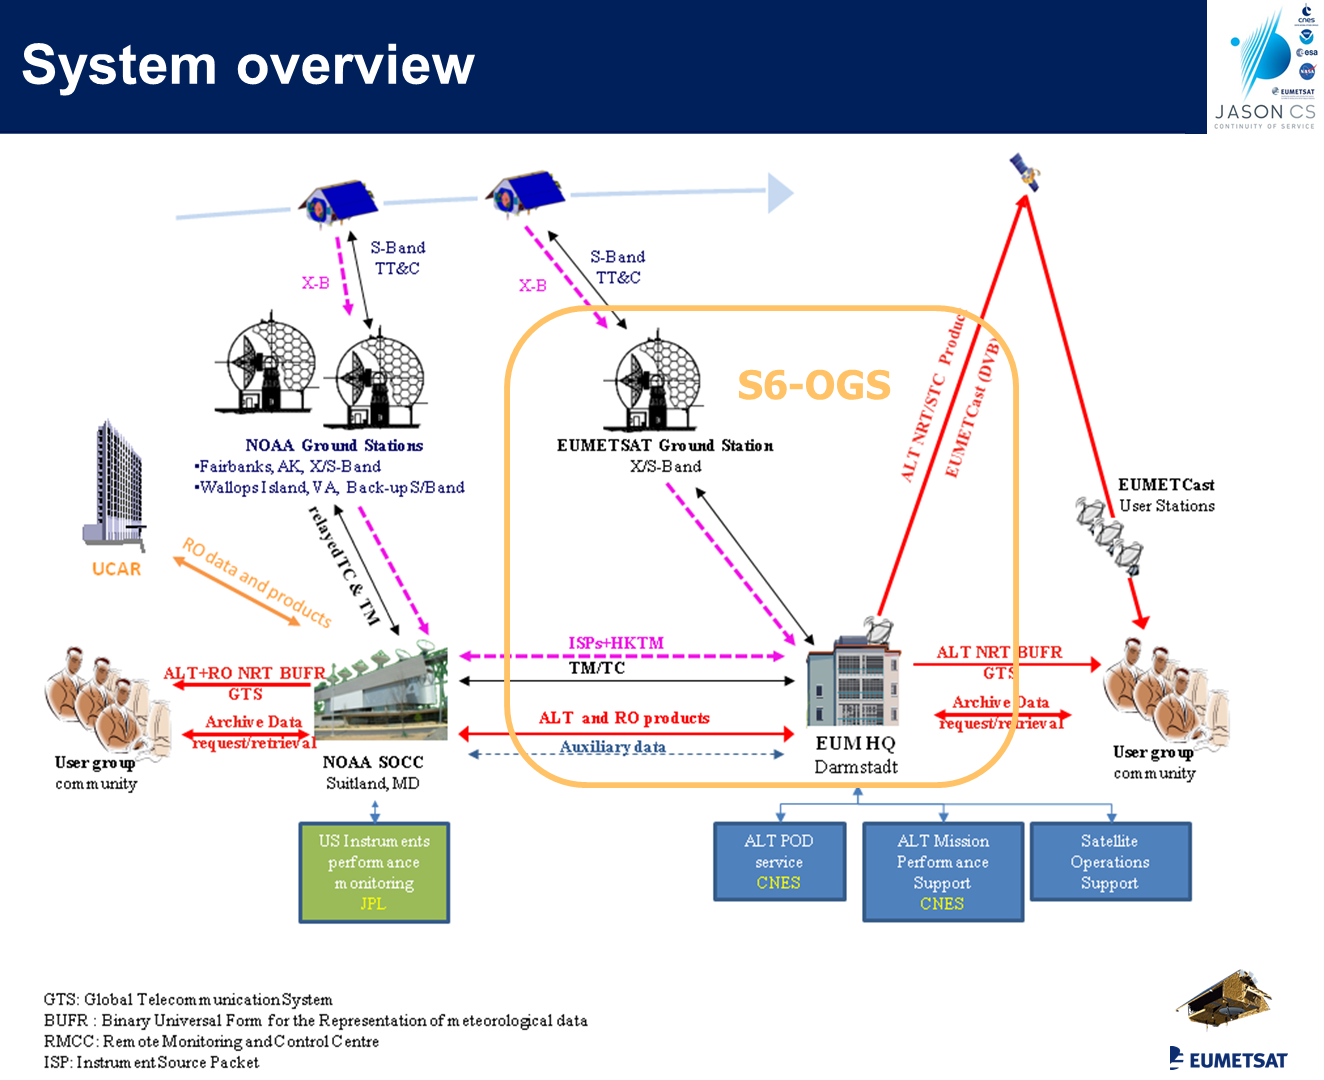 bpc_jason-cs-sentinel-6-system-overview.png